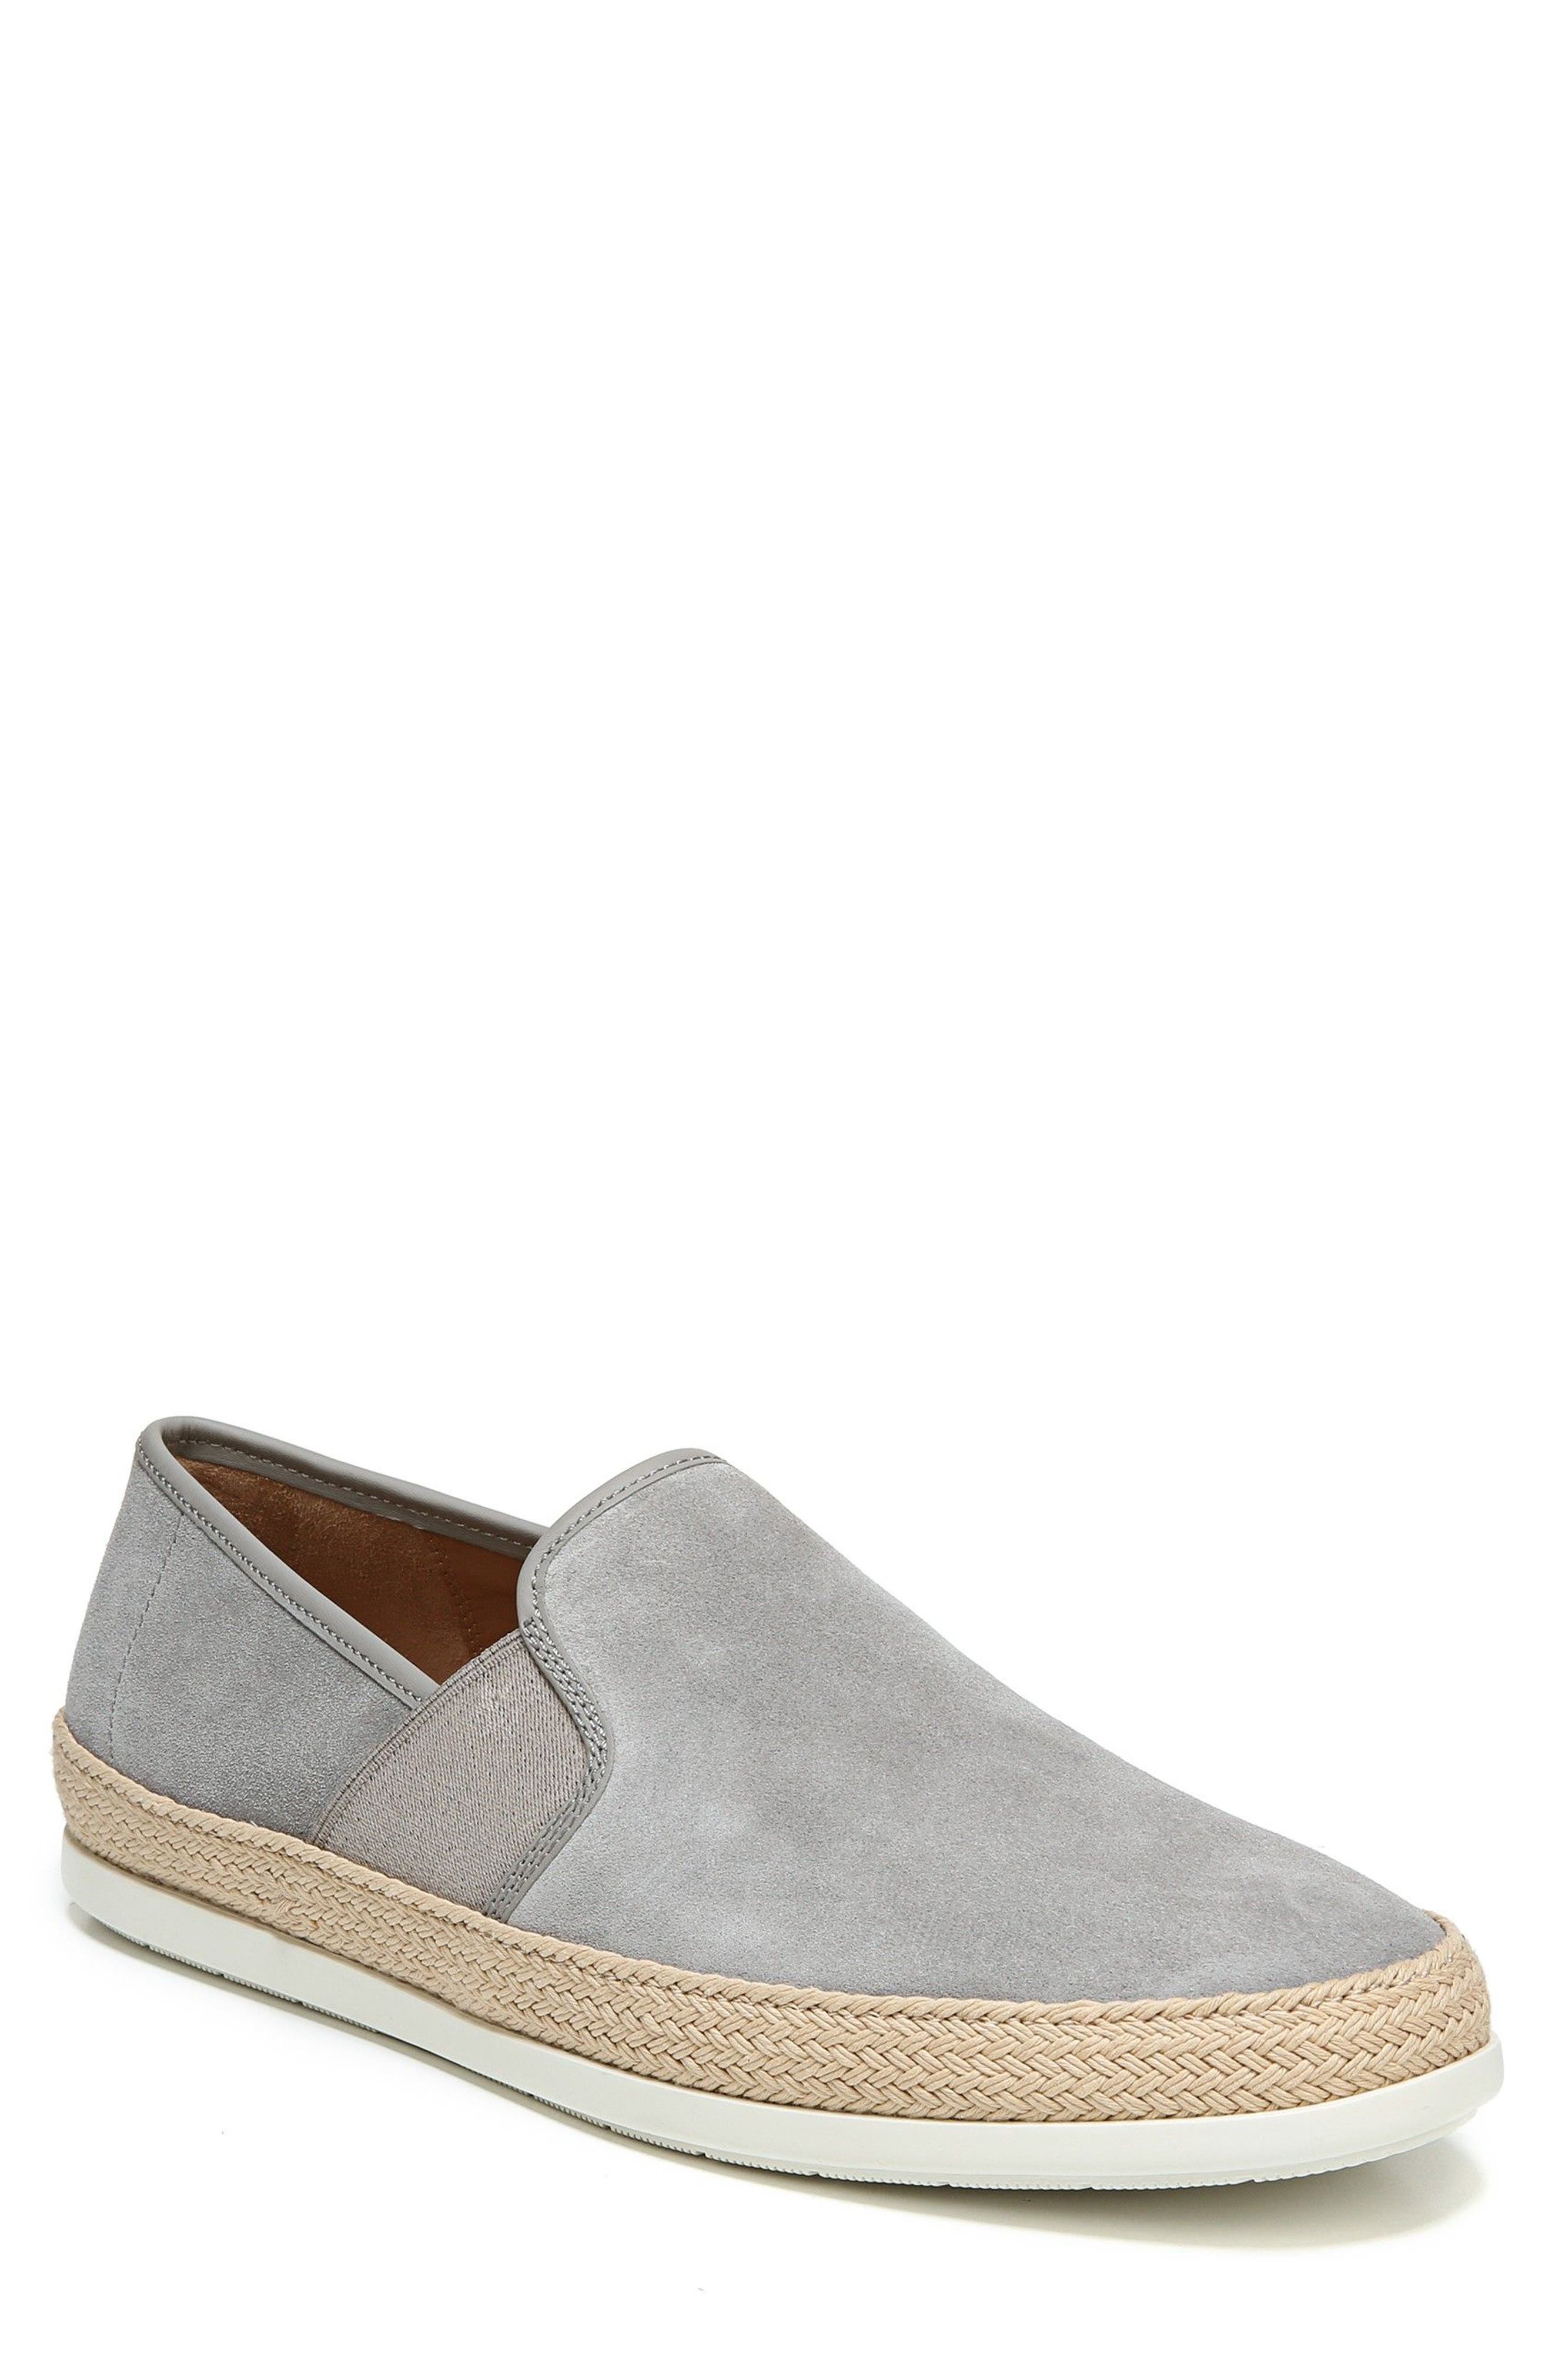 Chad Espadrille Slip-On Sneaker,                             Main thumbnail 1, color,                             020